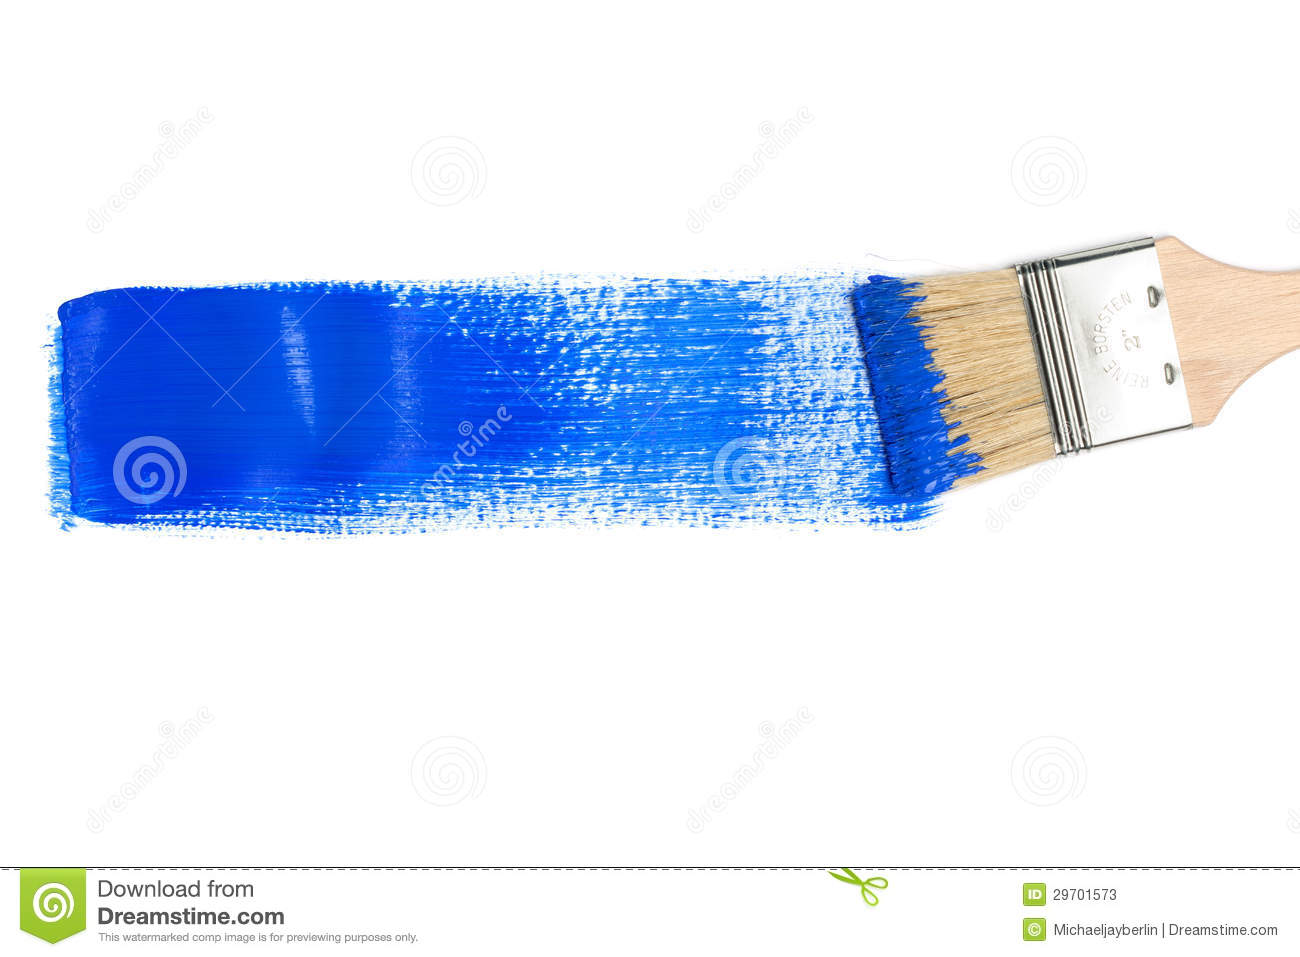 Watch more like Red With Blue Paintbrush Stroke Clip Art